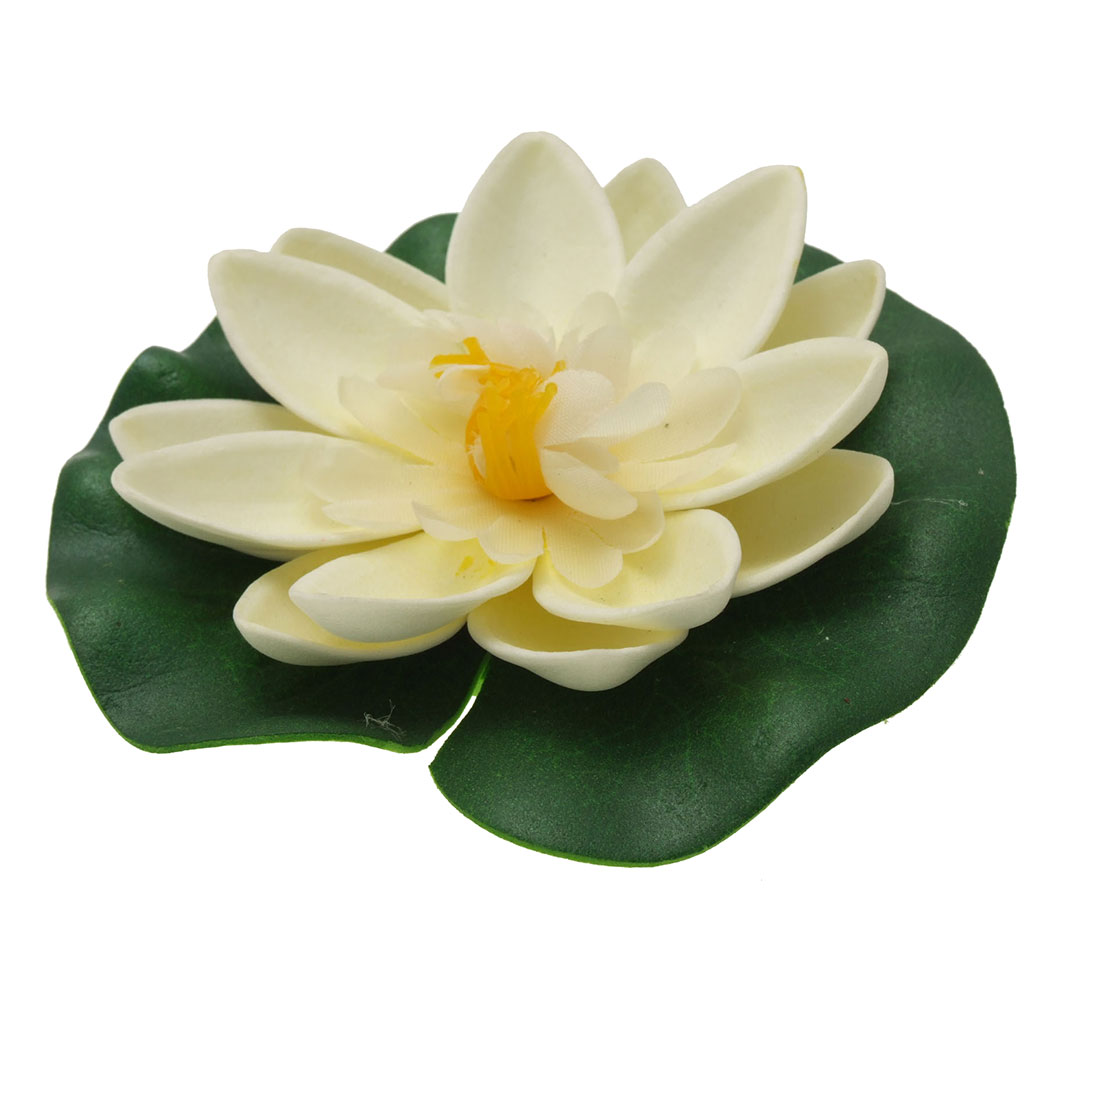 Aquarium Tank Foam Lotus Floating Decor Ornament